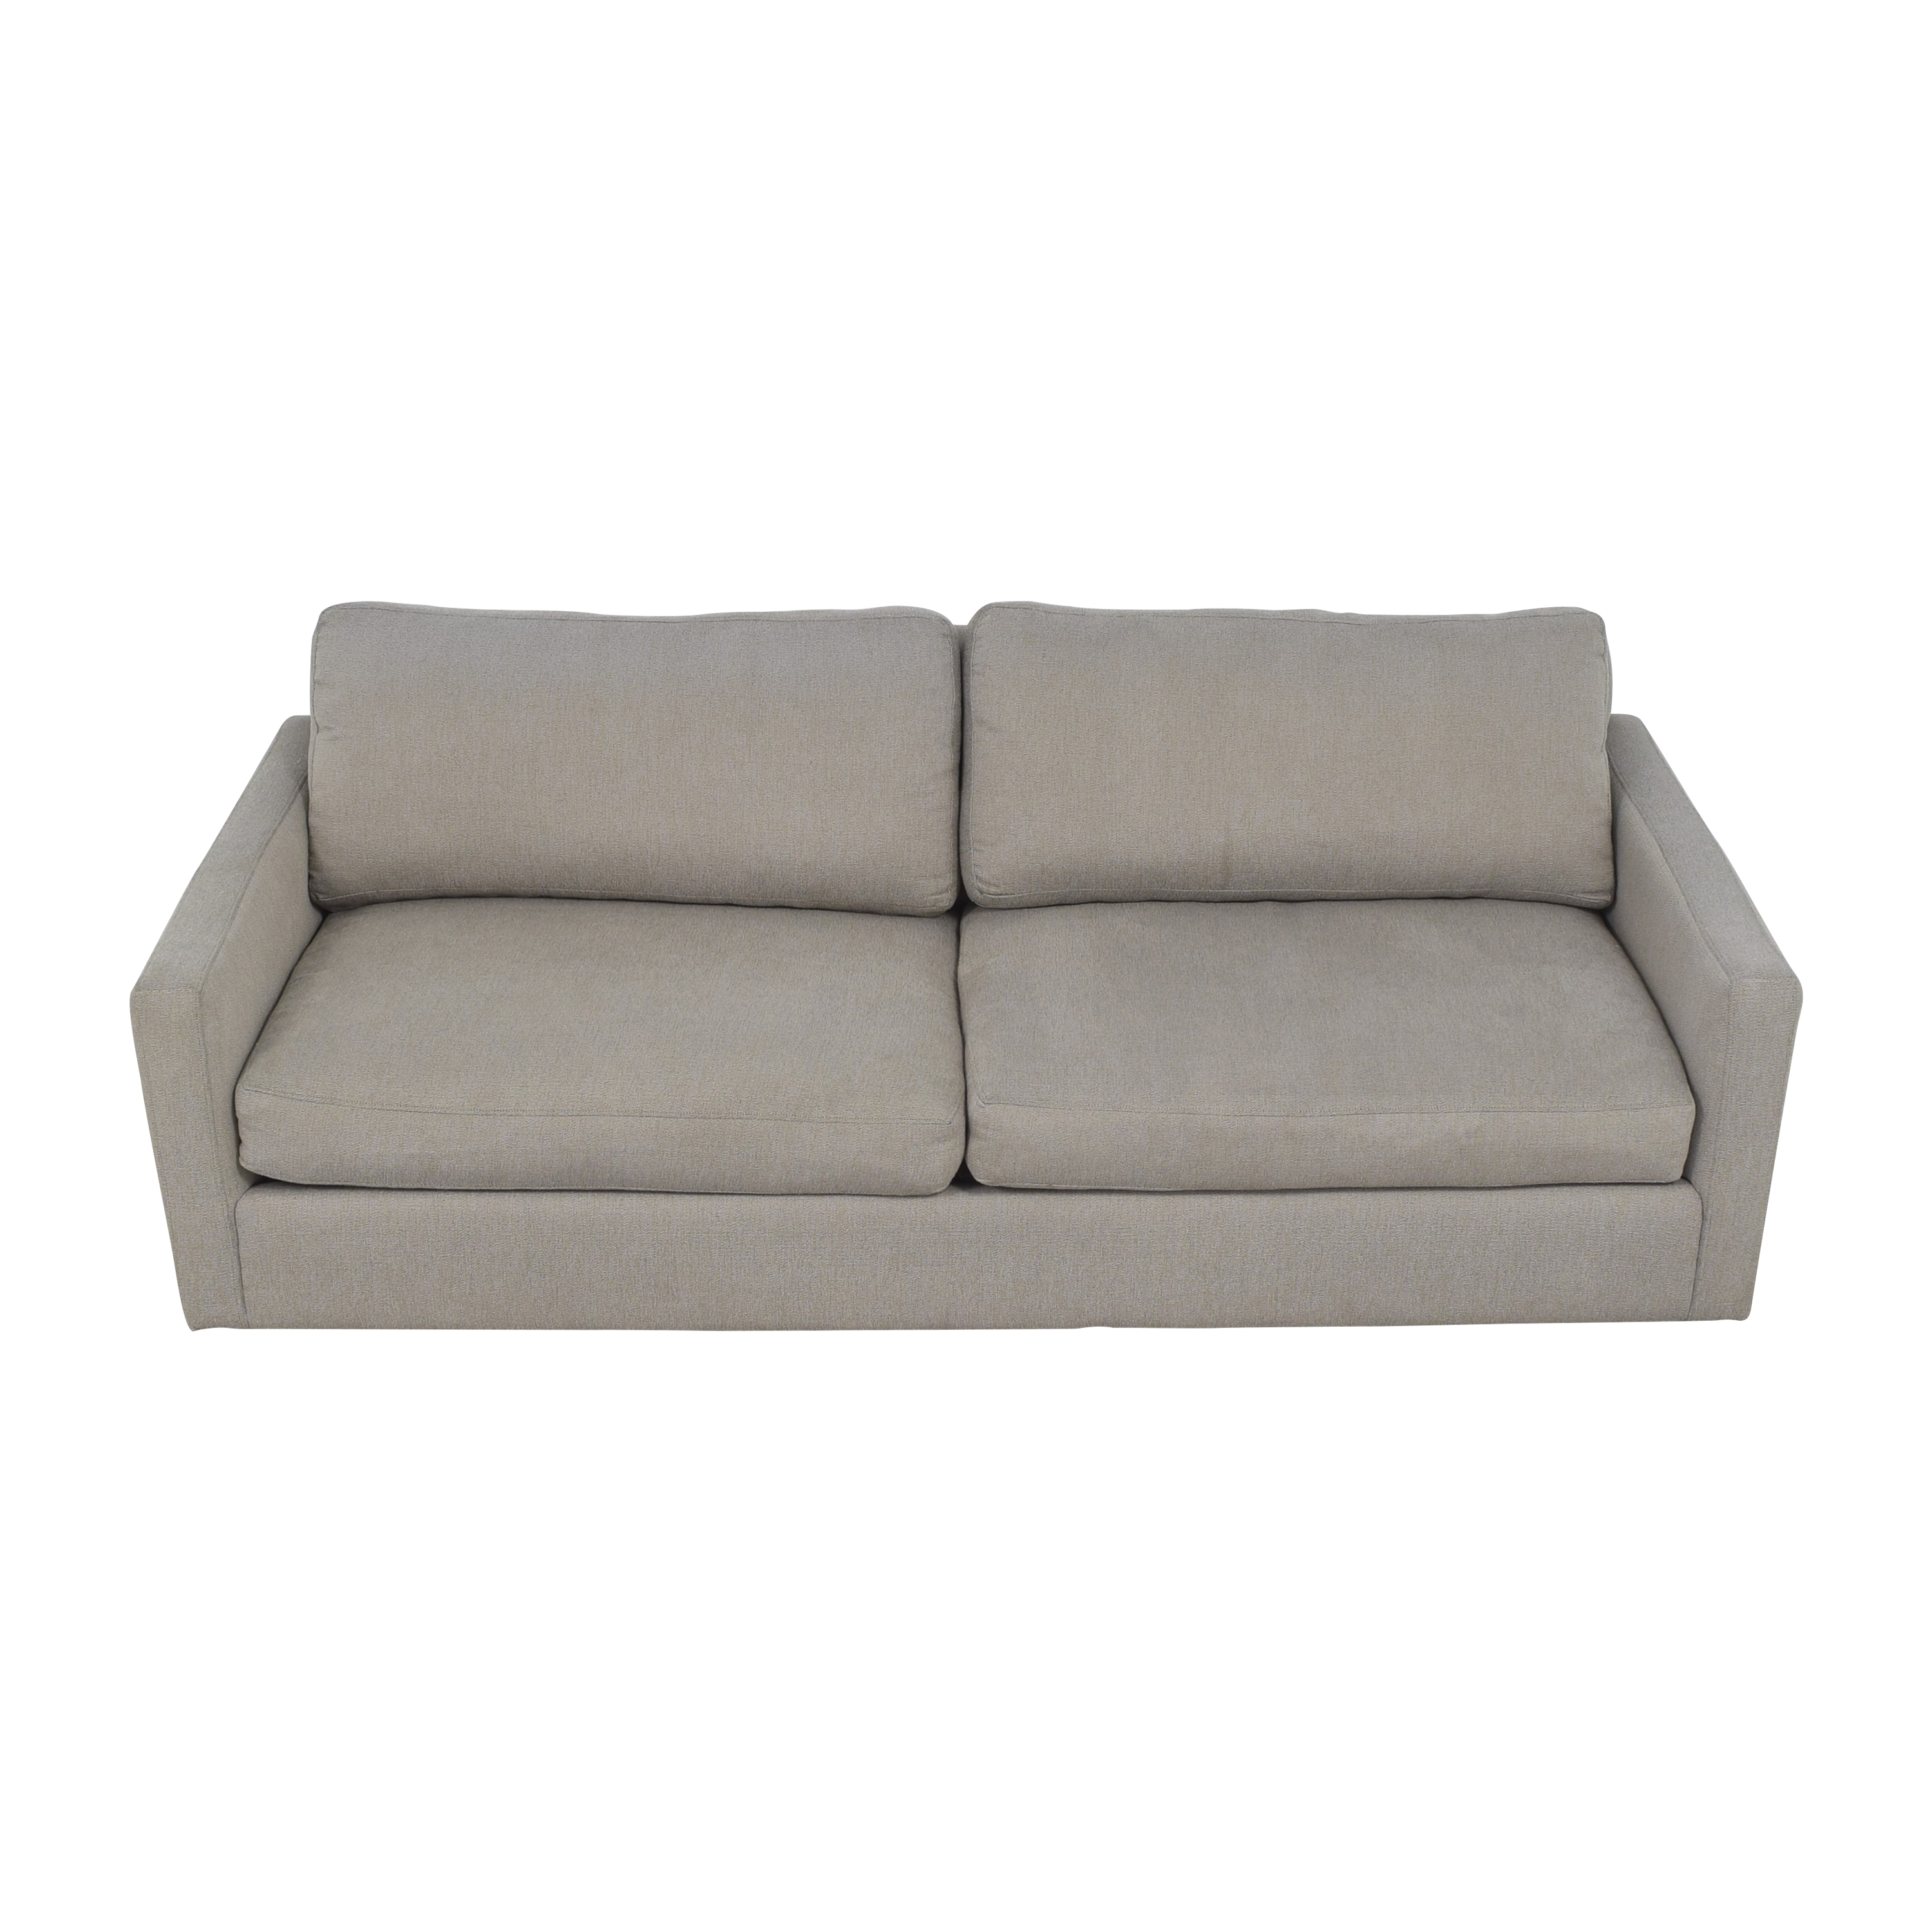 Room & Board Linger Two Seat Sofa / Classic Sofas